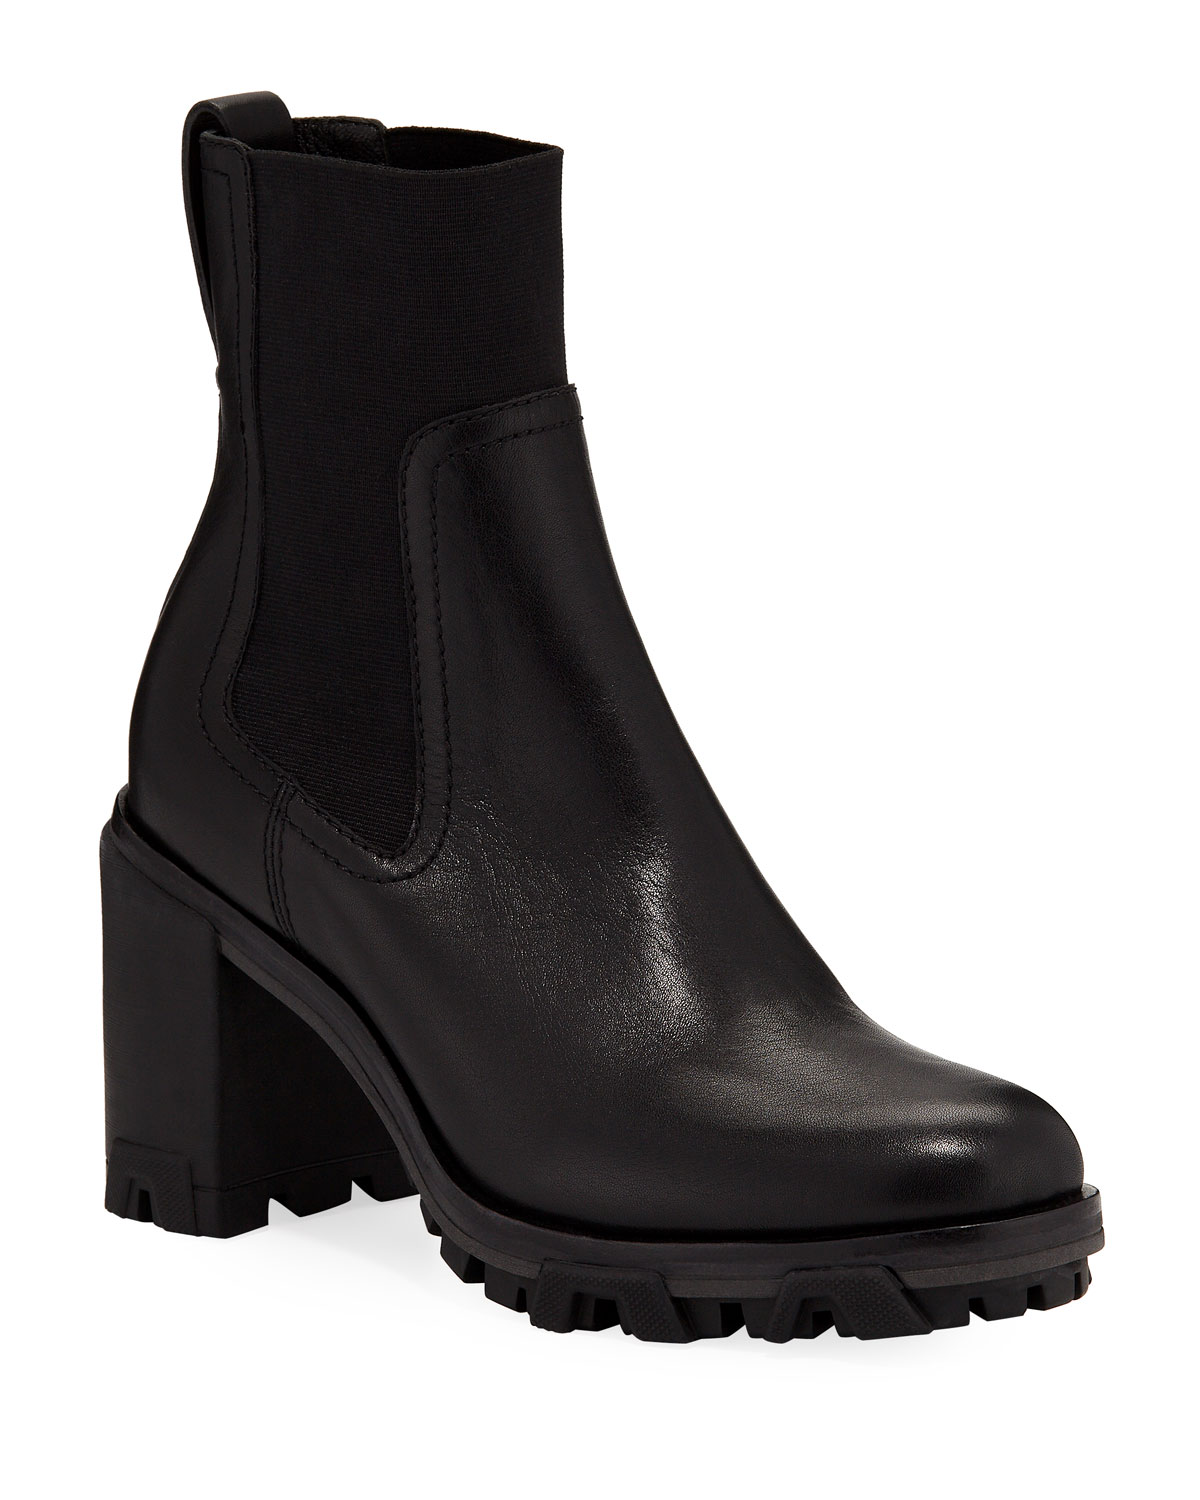 Shiloh High Gored Booties, Black